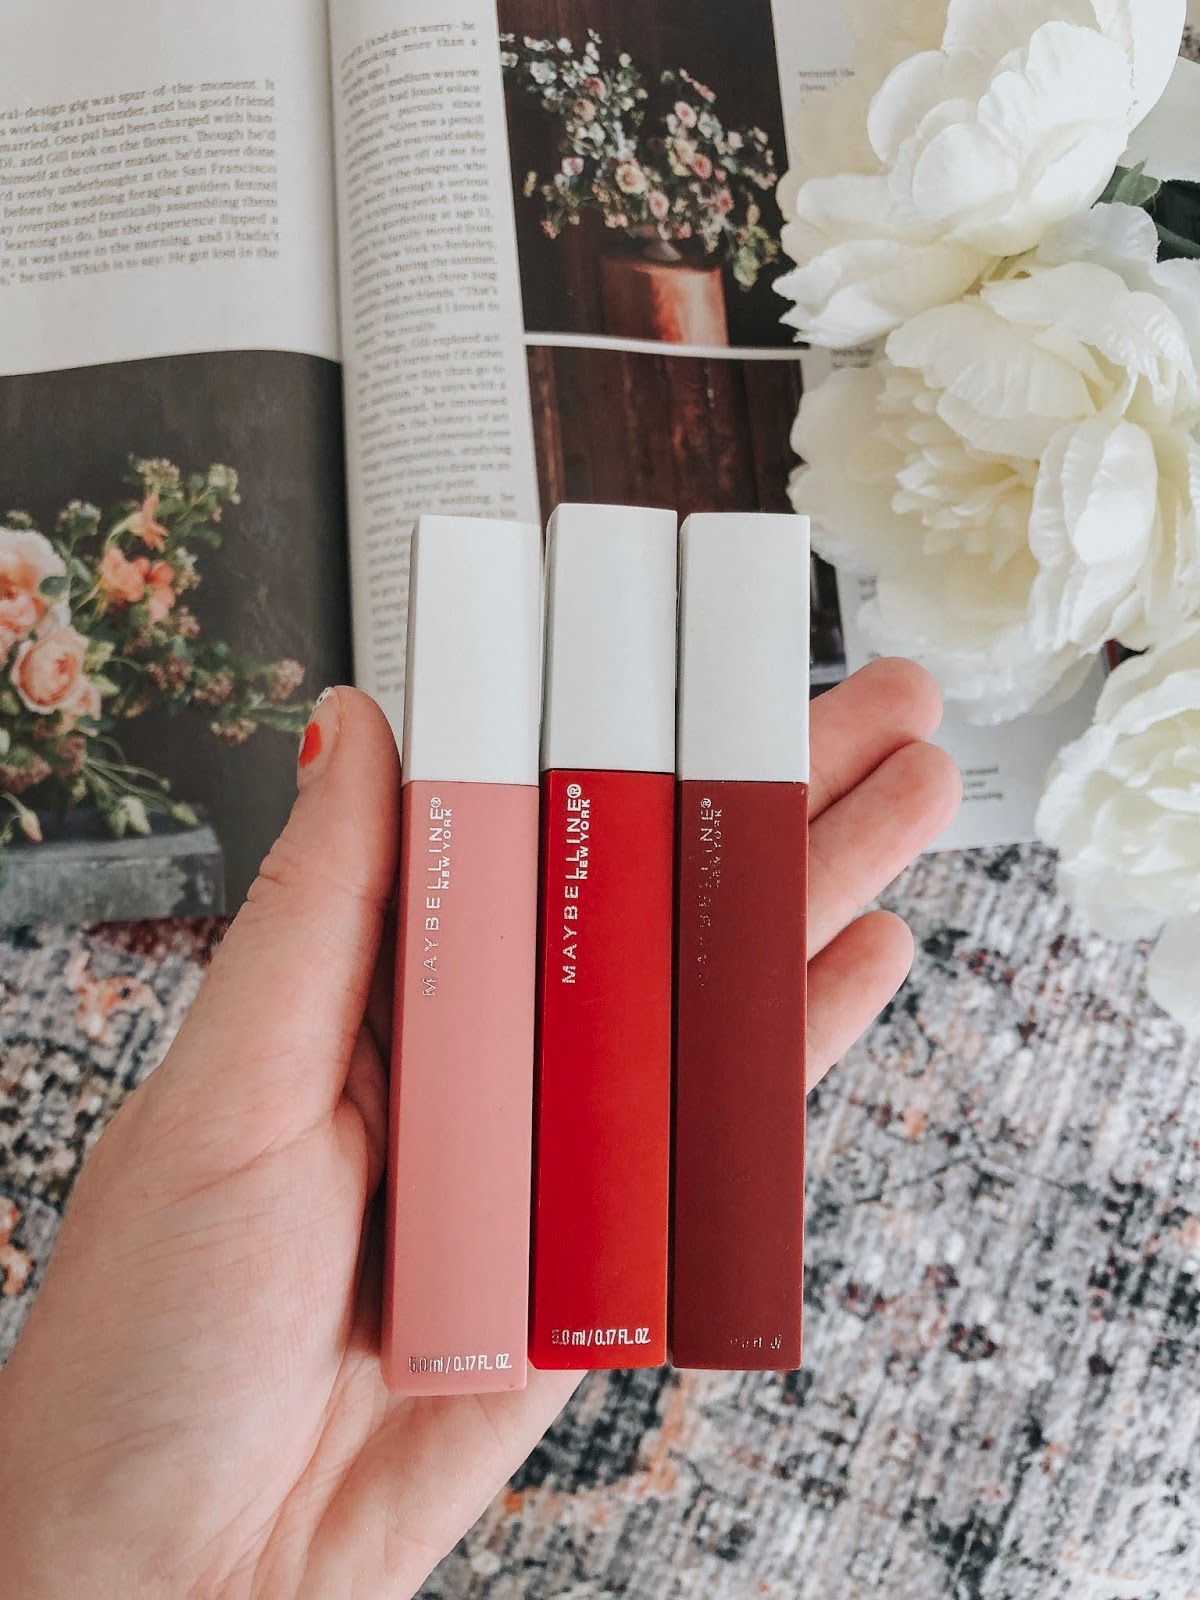 Best Drugstore Lipsticks for Fair Skin: Summer Edition Maybelline SuperStay Matte Liquid Lipsticks in Pioneer, Lover, Seductress.